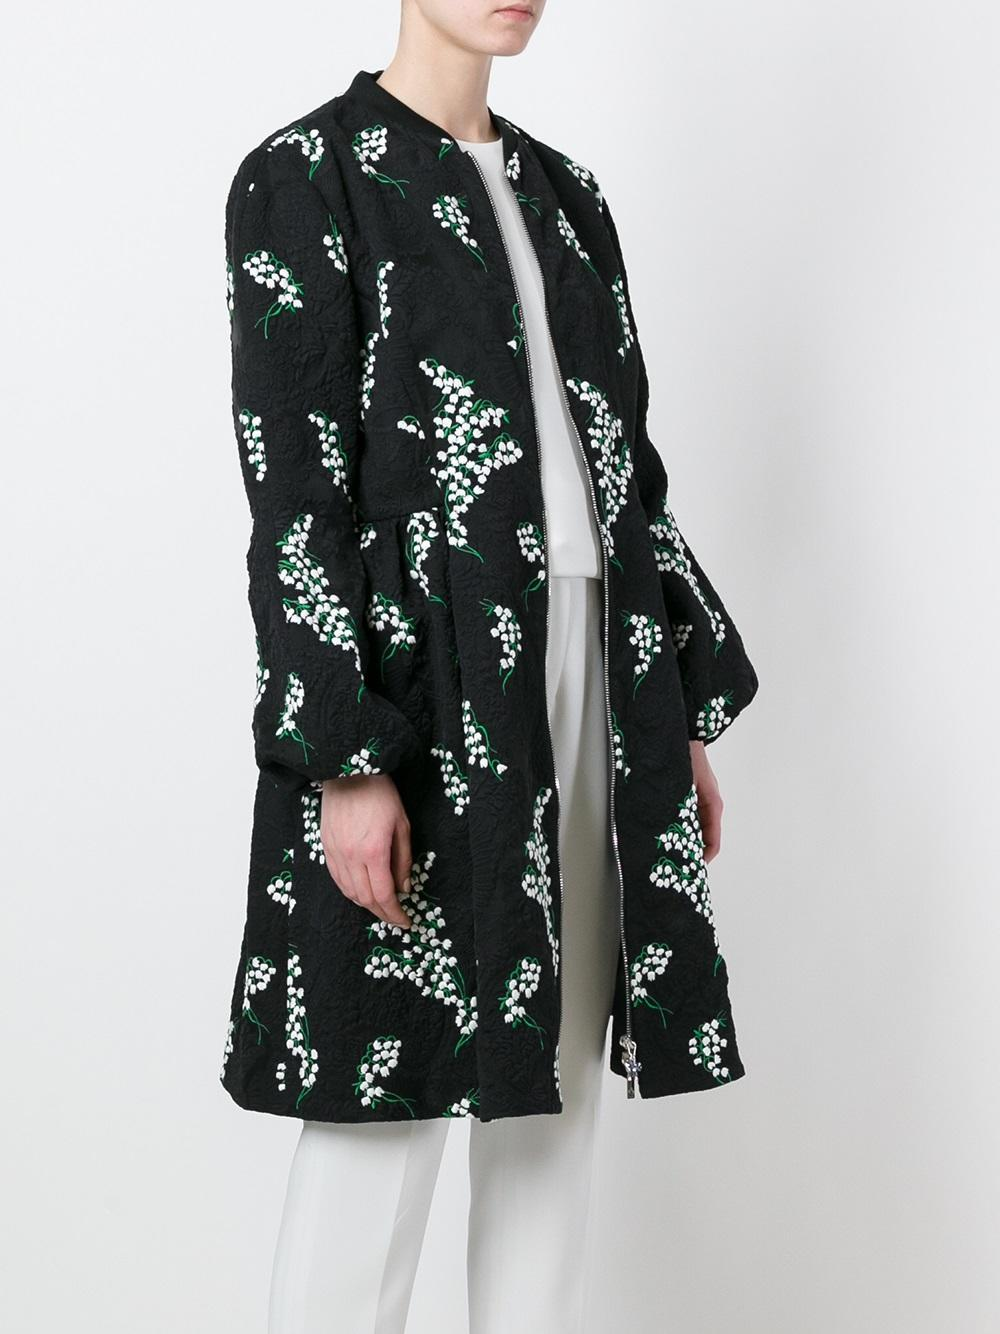 Moncler gamme rouge floral embroidered jacquard puff